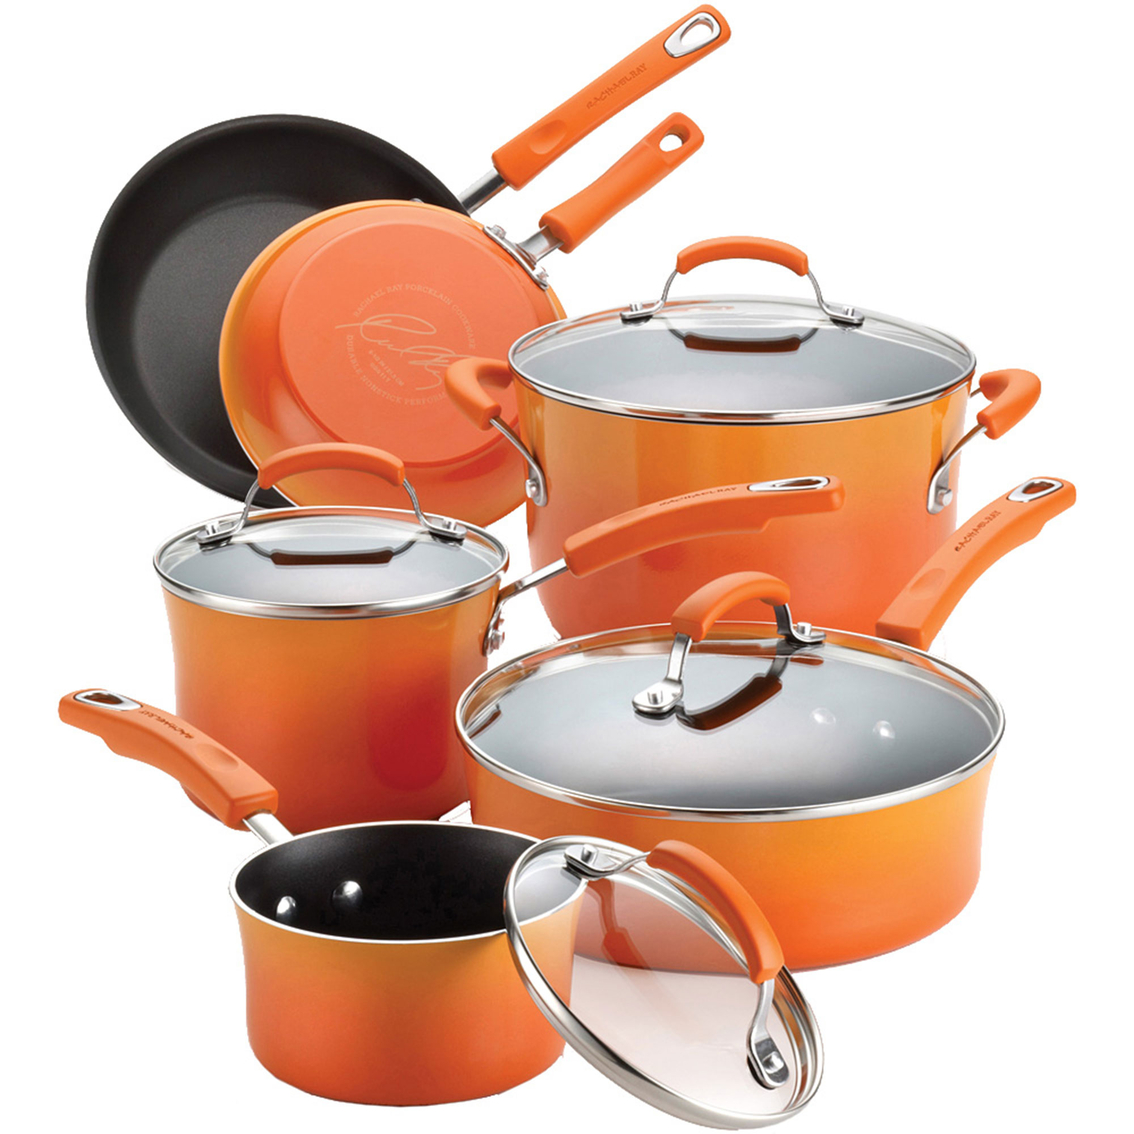 Rachael Ray Porcelain Enamel Ii 10 Pc. Cookware Set